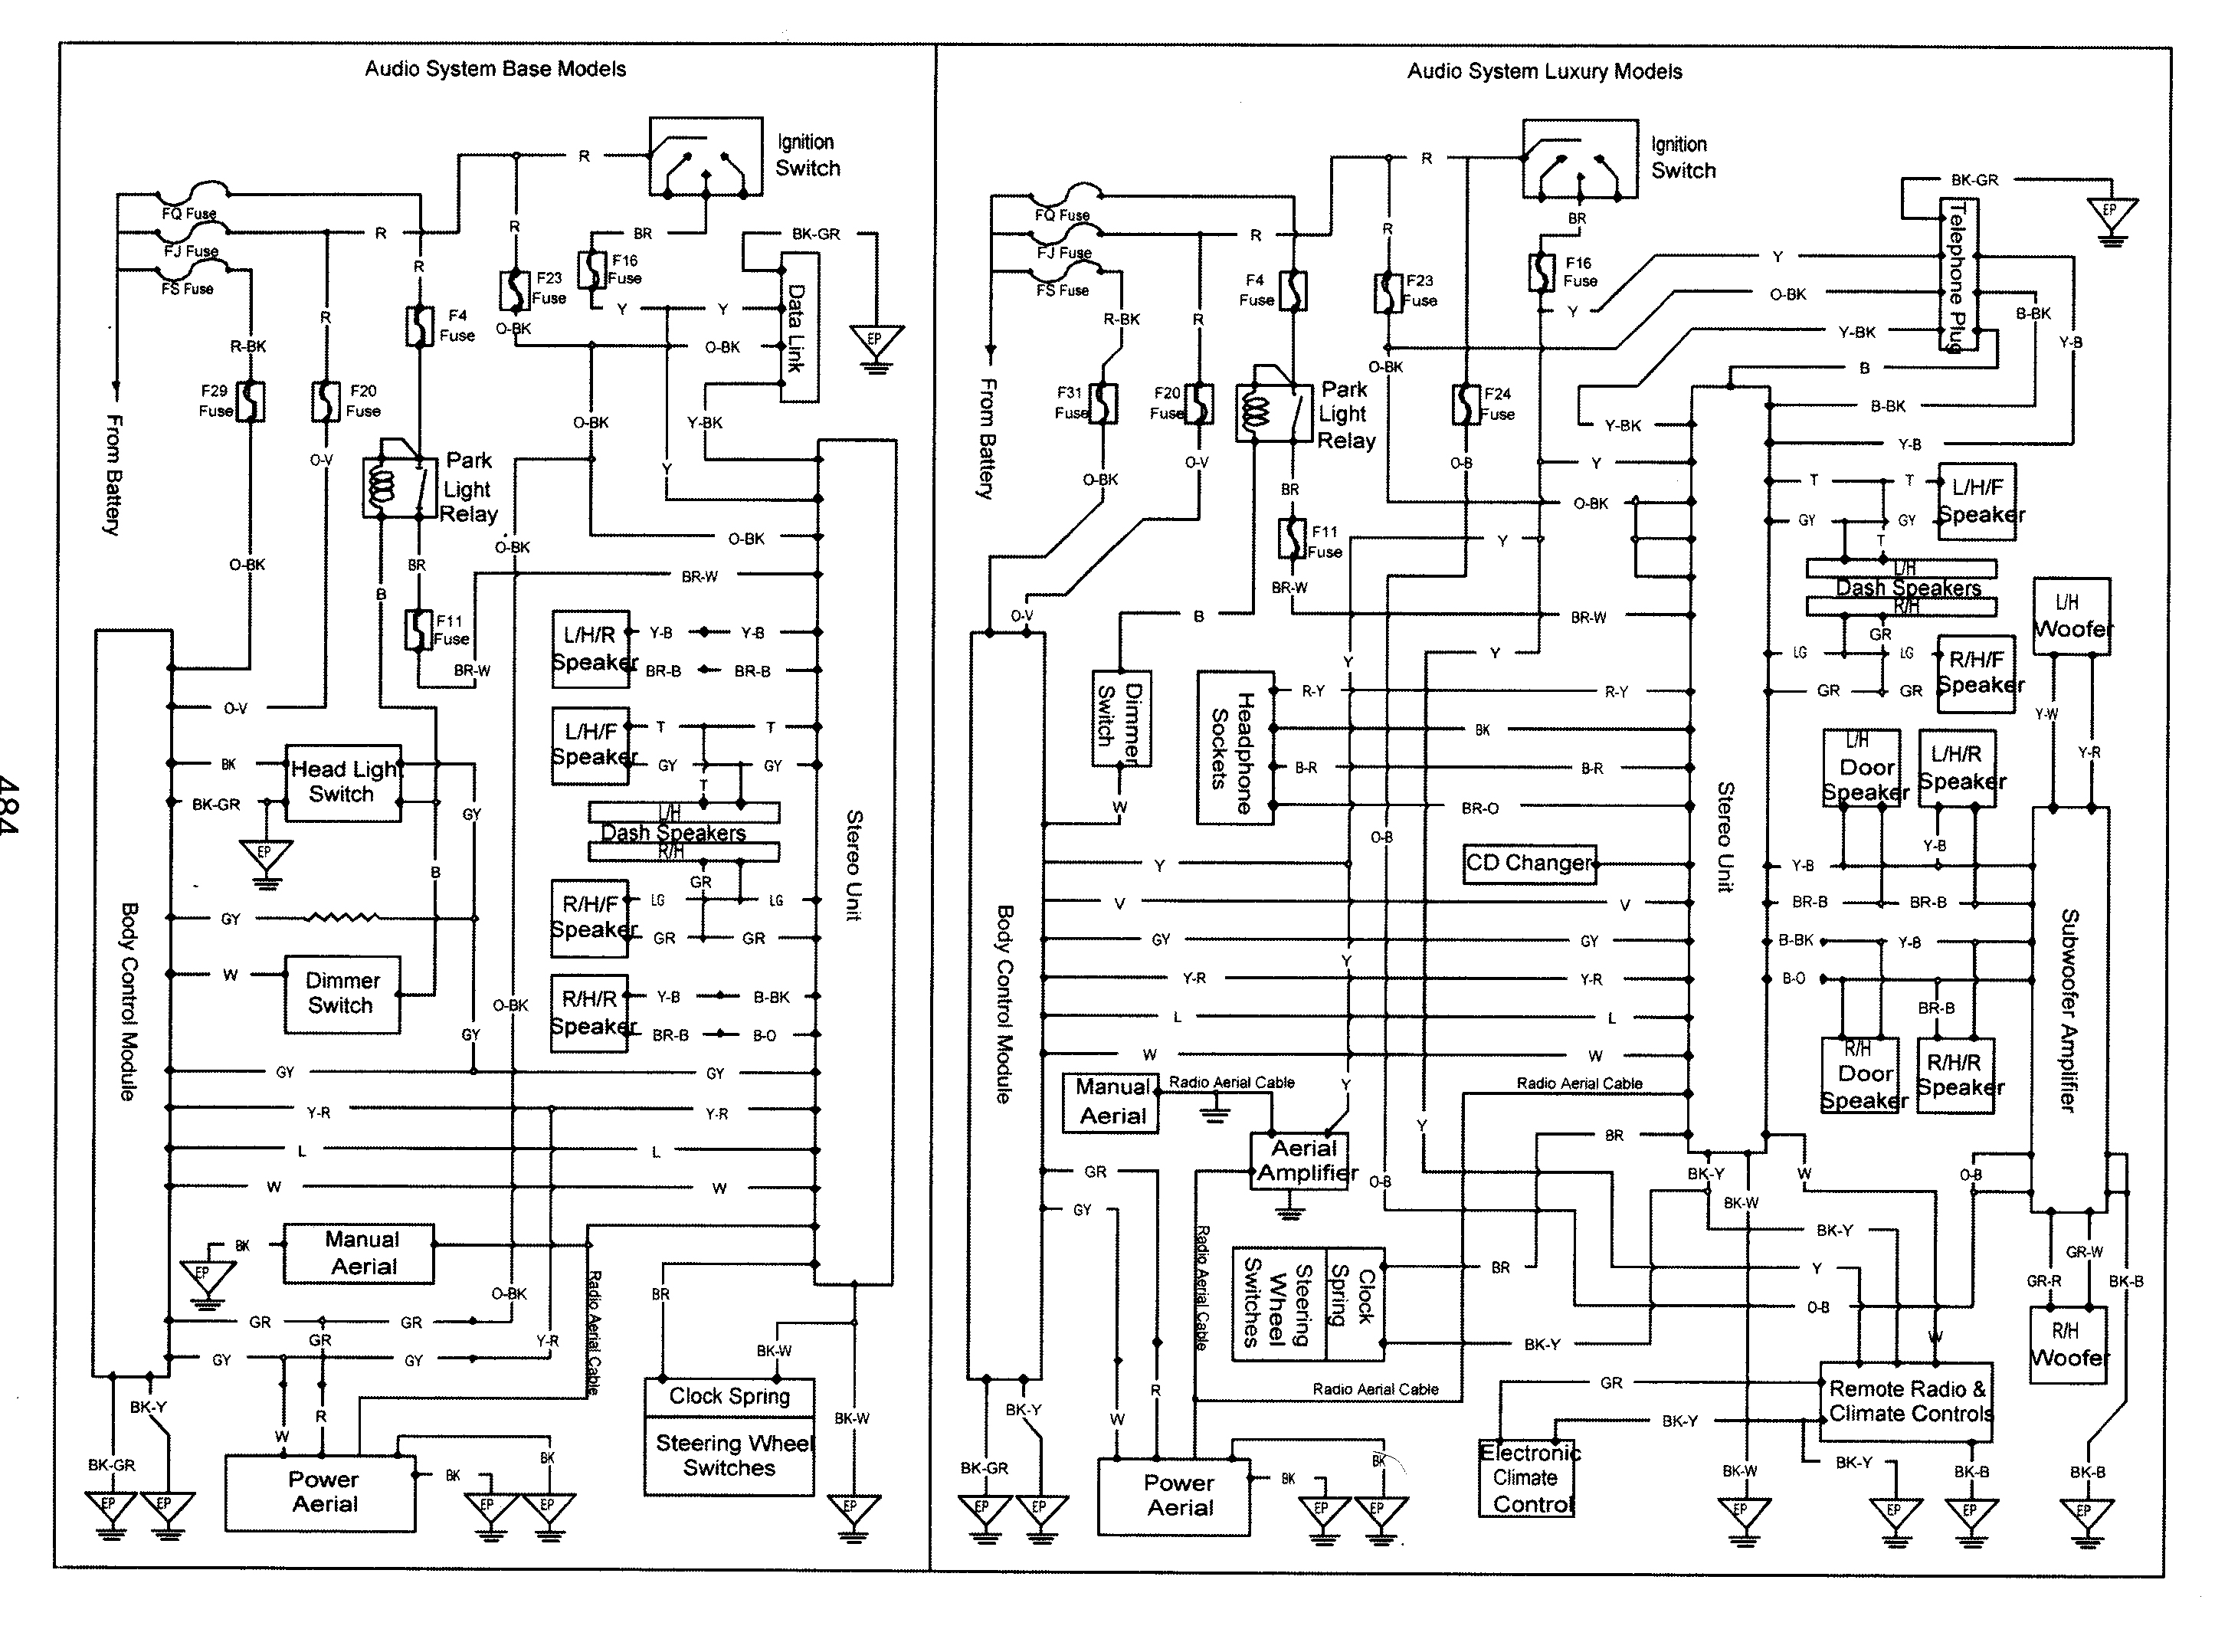 IMG_009?resized665%2C496 vz wiring diagram efcaviation com vz bcm wiring diagram at panicattacktreatment.co